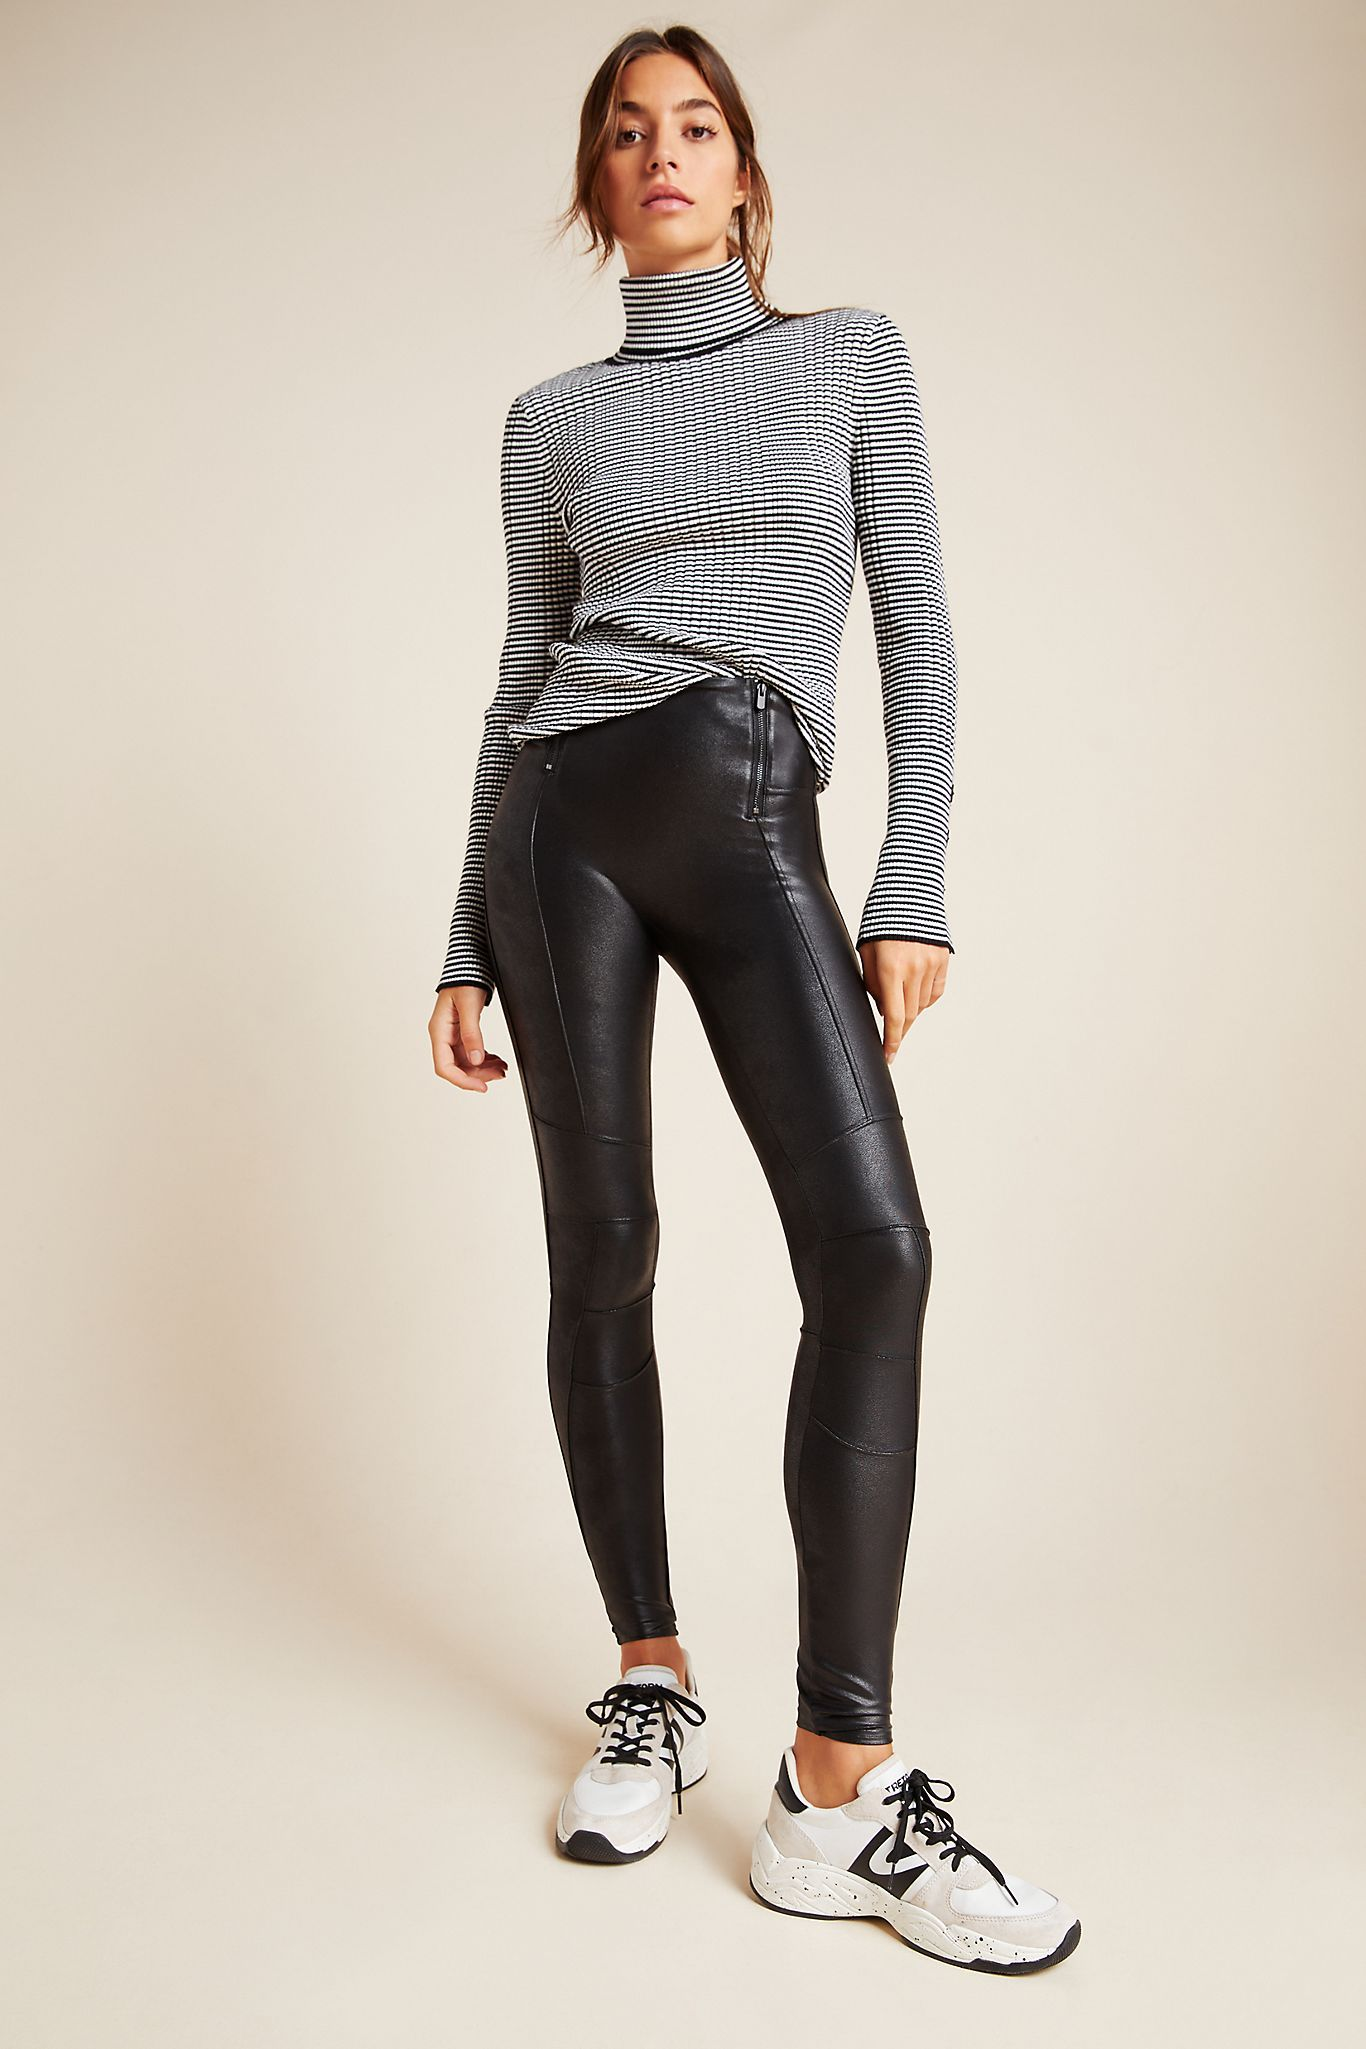 Spanx HipZip Faux Leather Leggings in 2020 Black